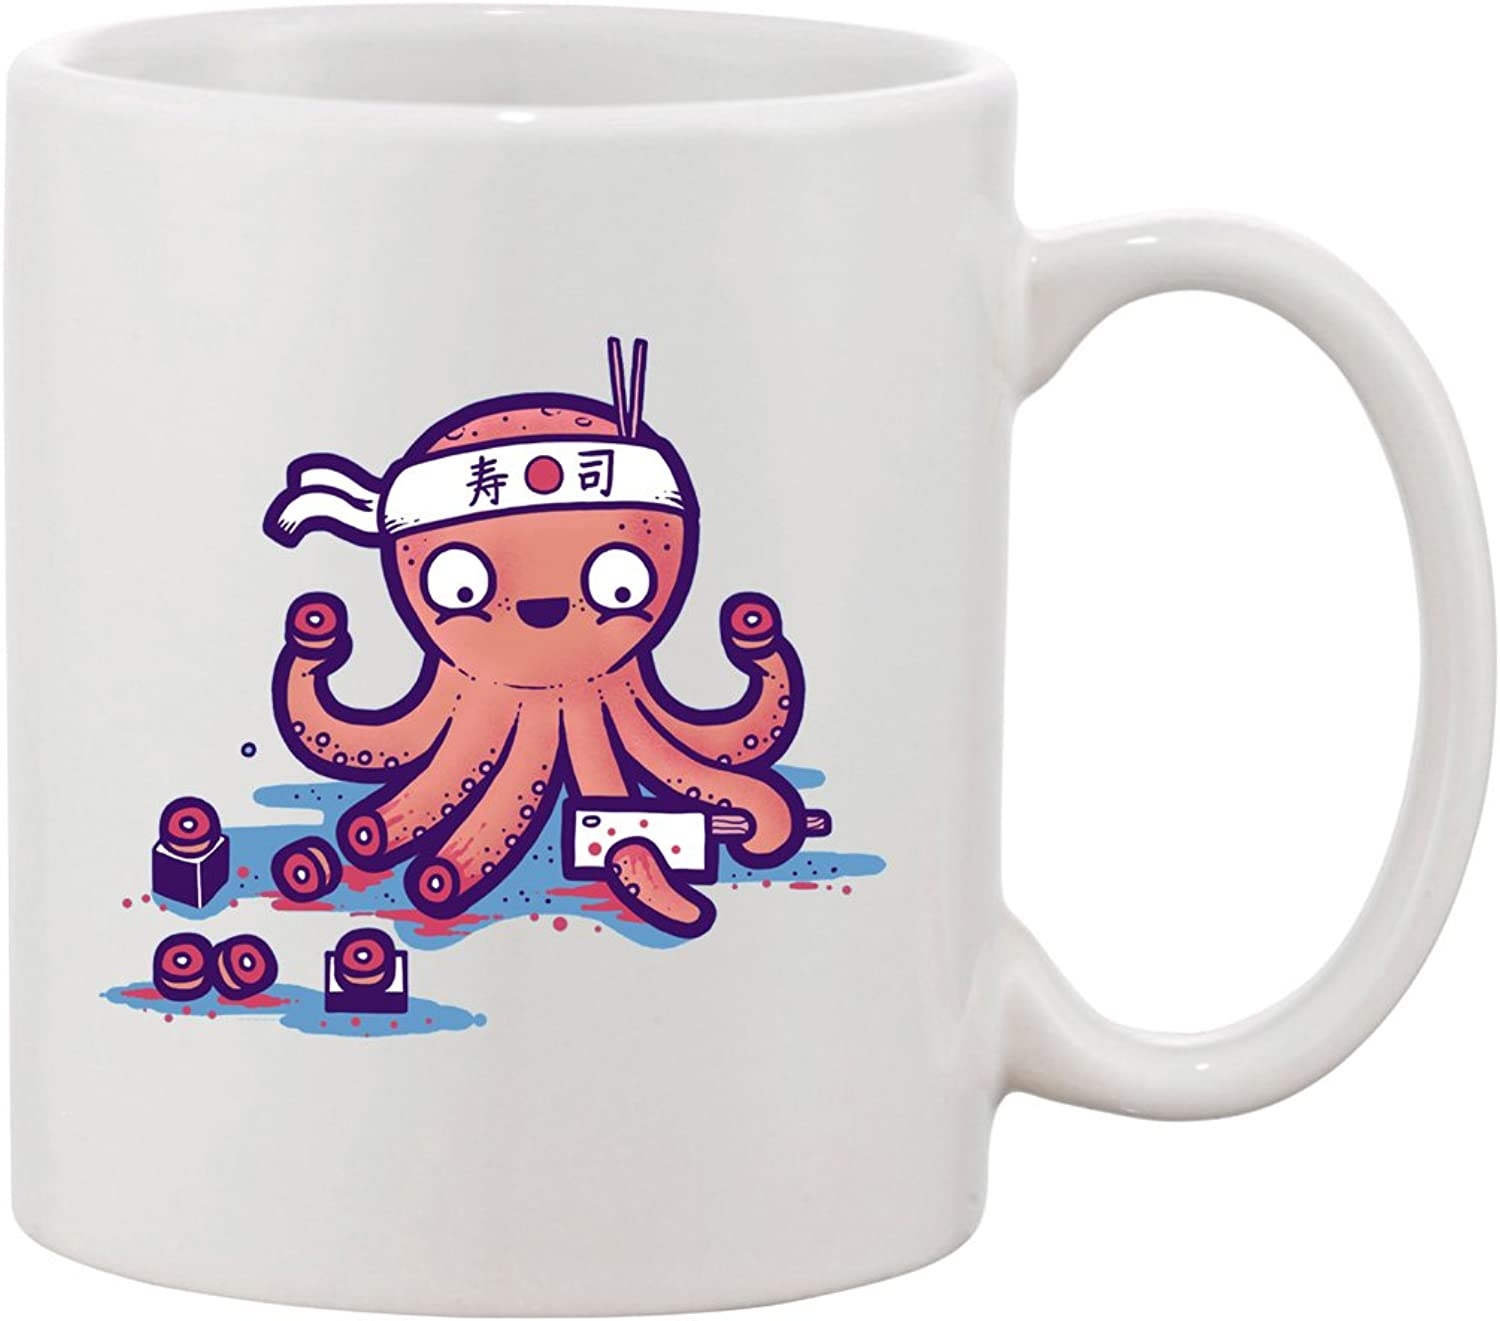 Ceramic Coffee Mug Octosushi funny Japanese Octopus Chef Cutting Tentacles octosushi funny Japanese Octopus Chef Cutting Tentacles